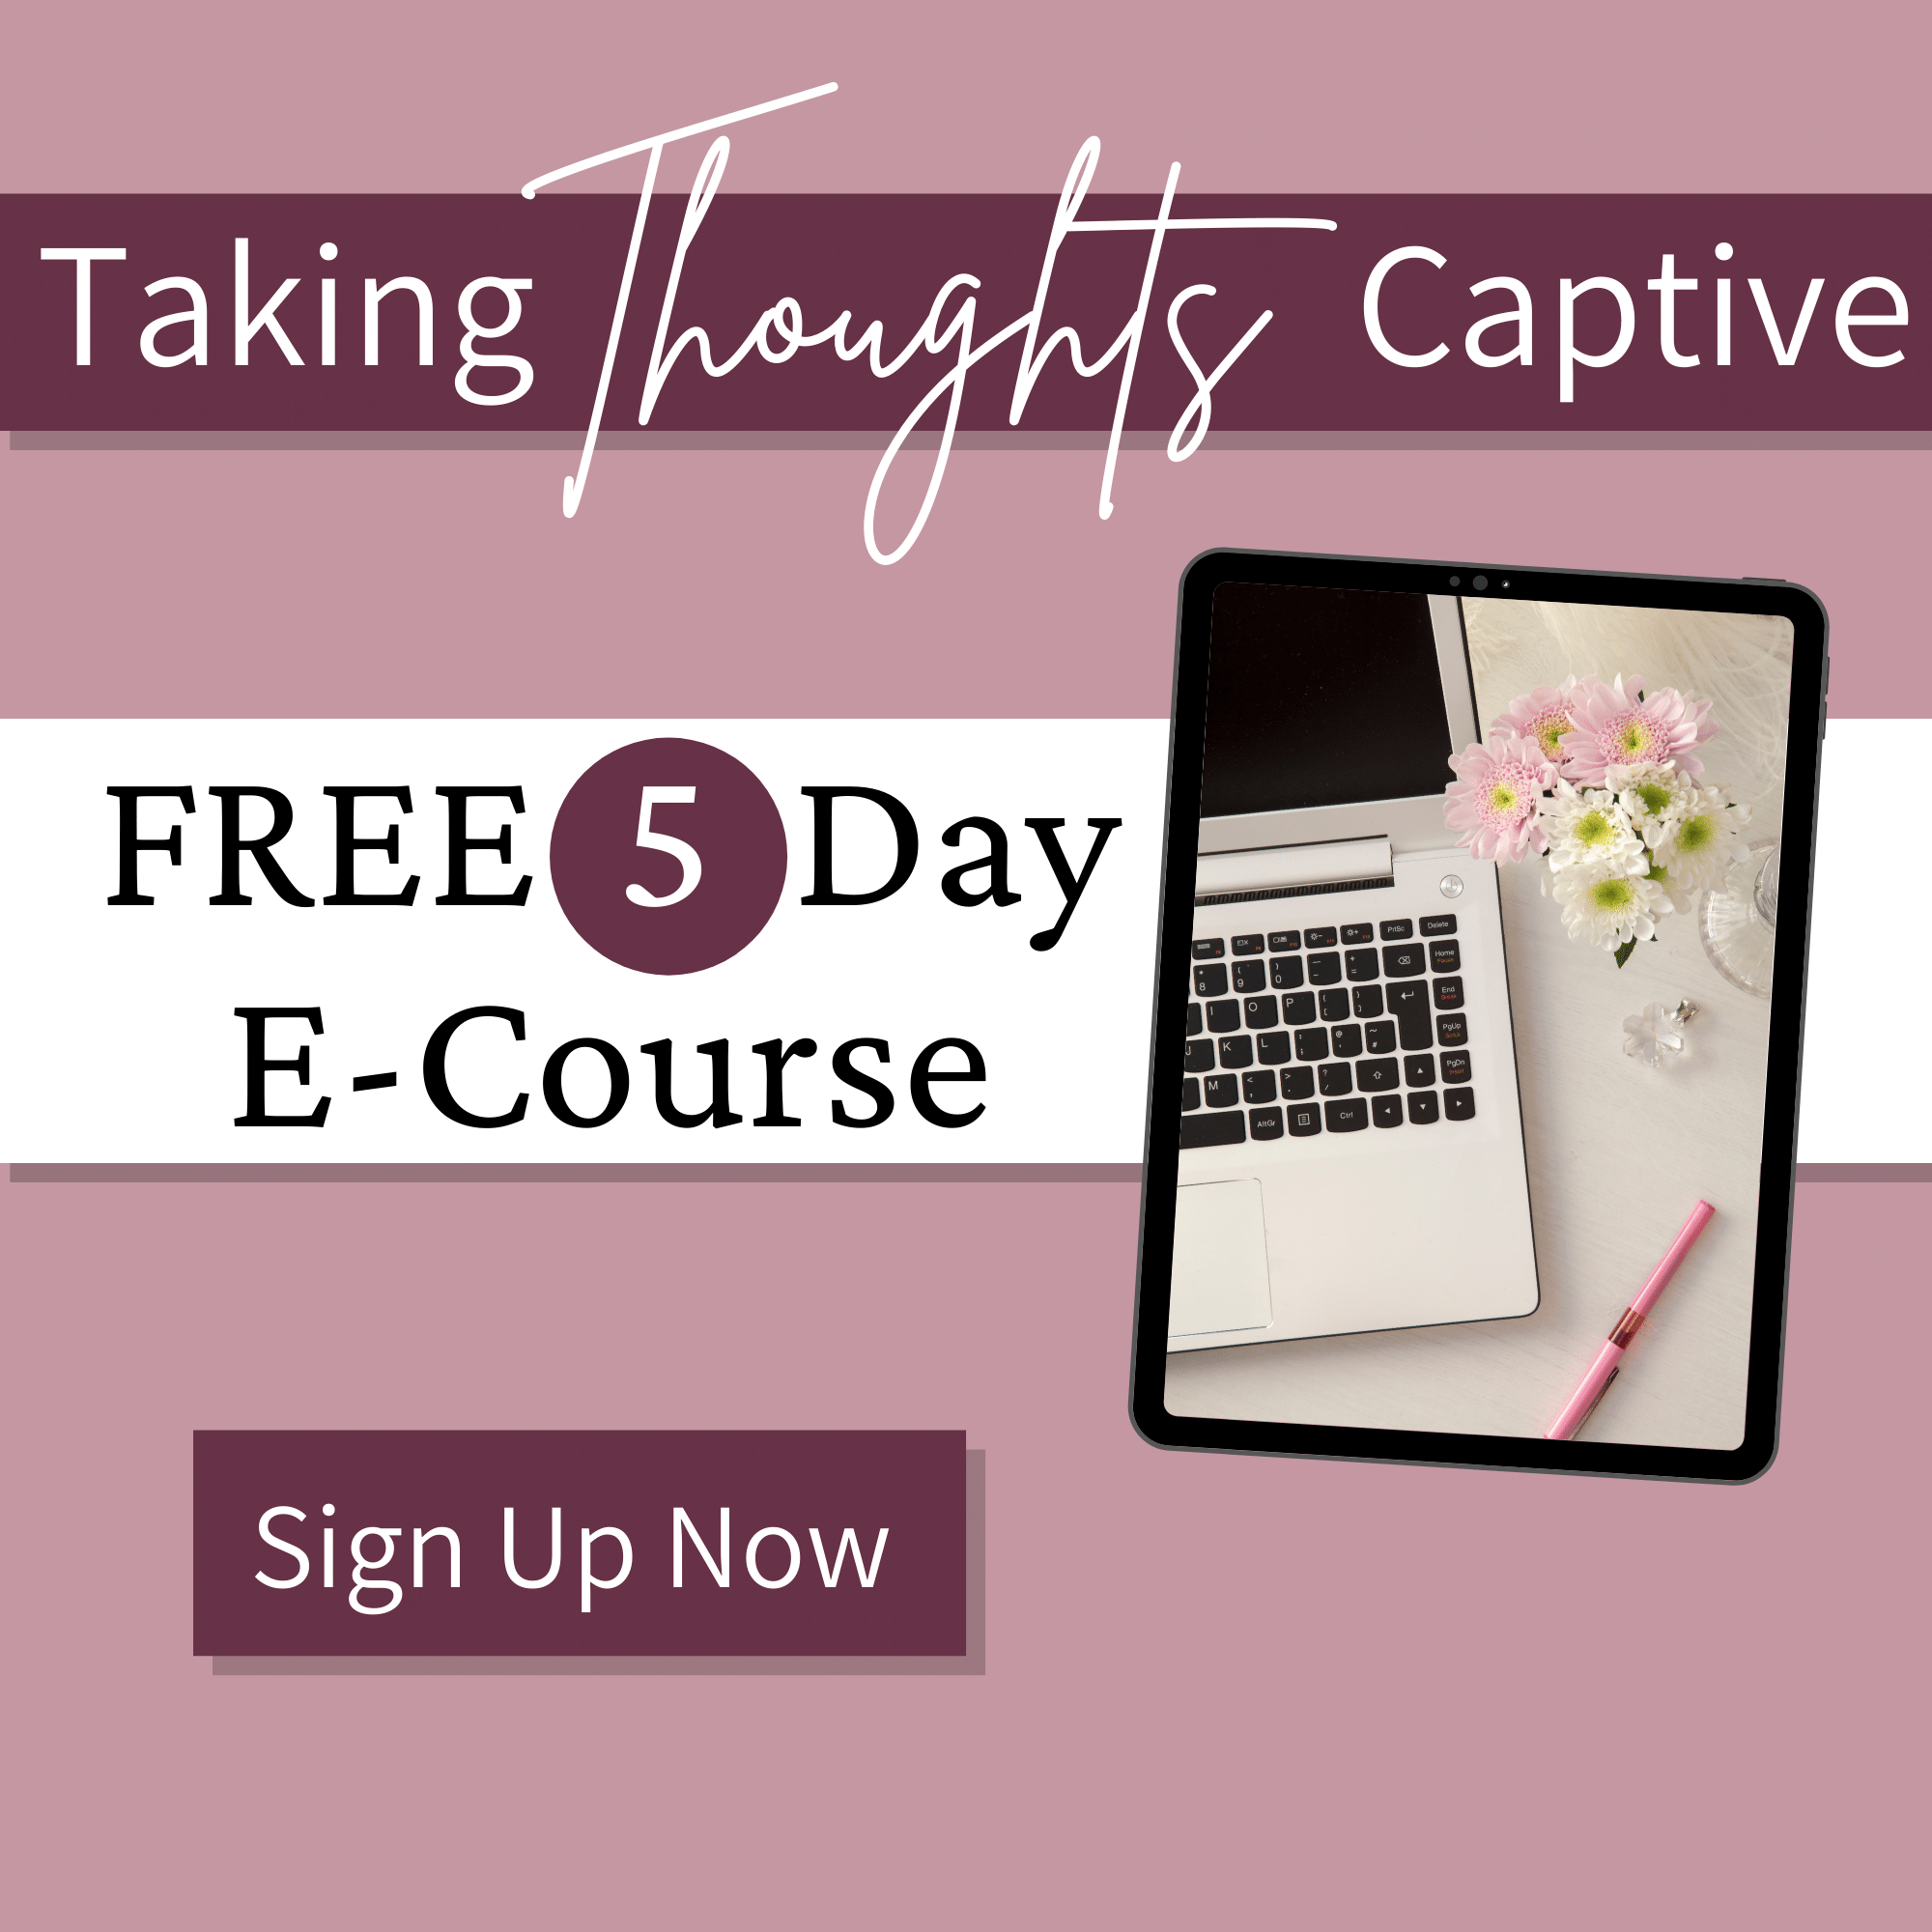 FREE E-COURSE: Taking Thoughts Captive